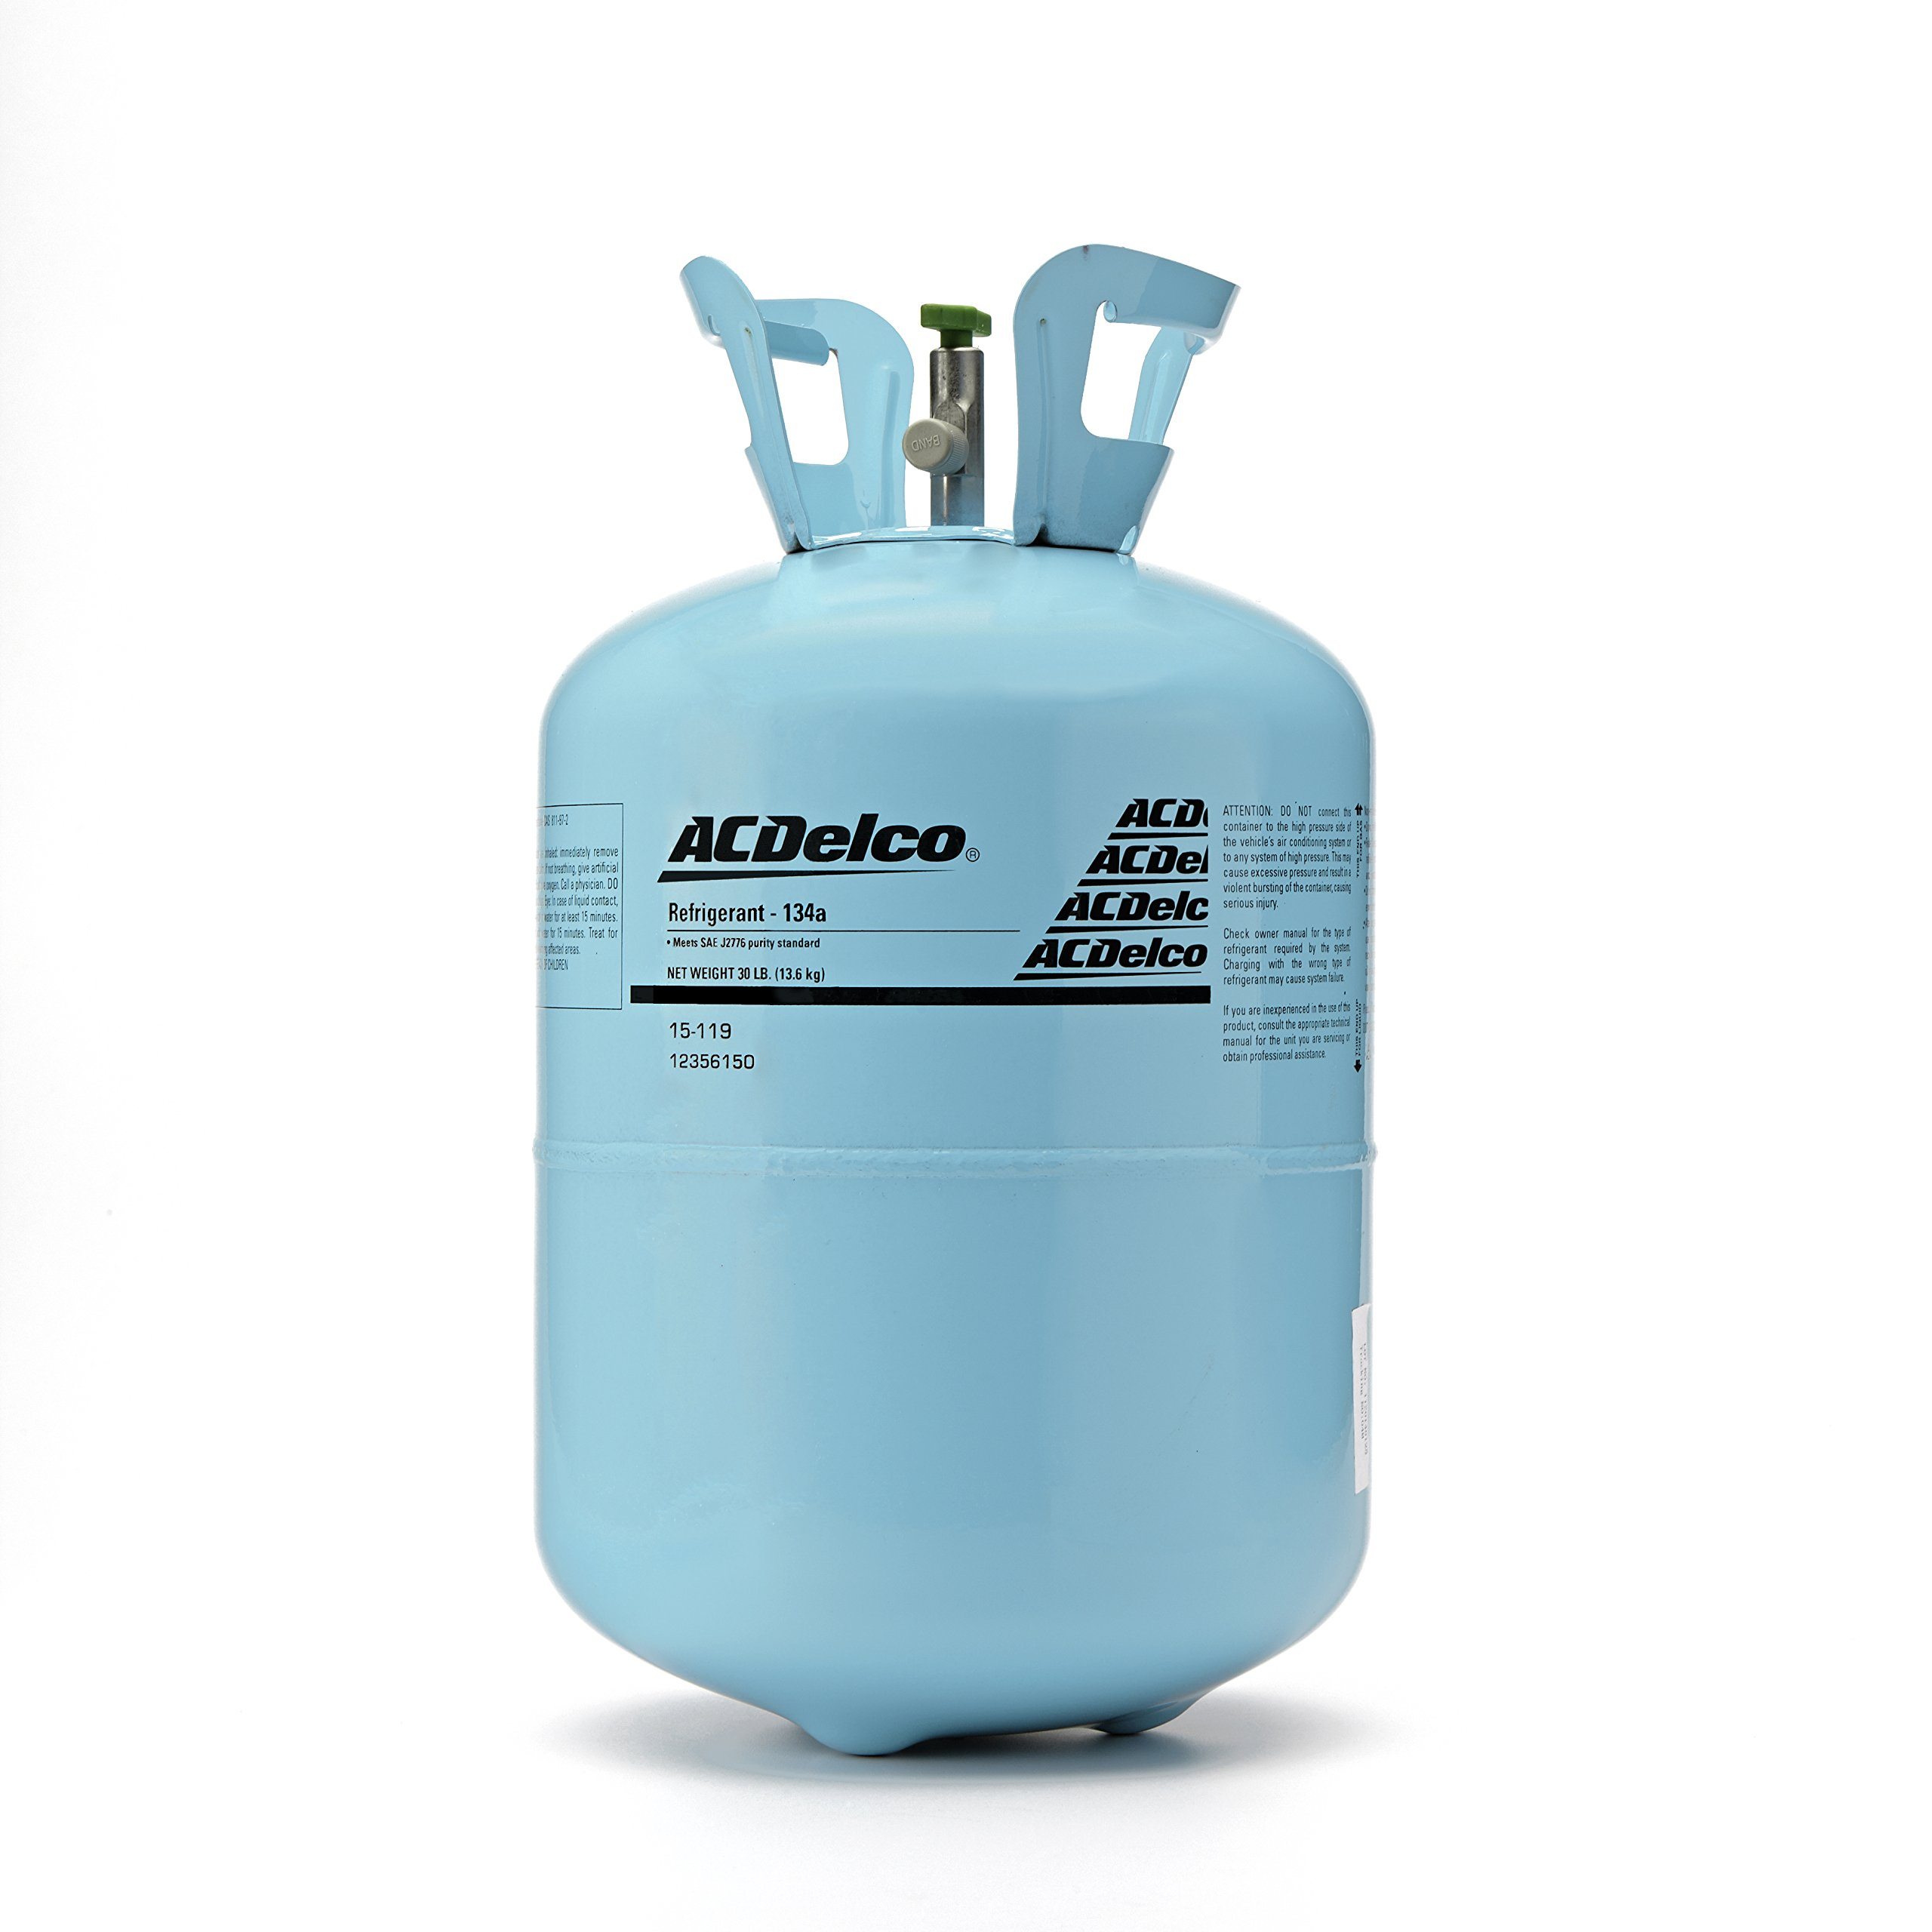 ACDelco 15-119 R134A Air Conditioning Refrigerant - 30 lb Cylinder